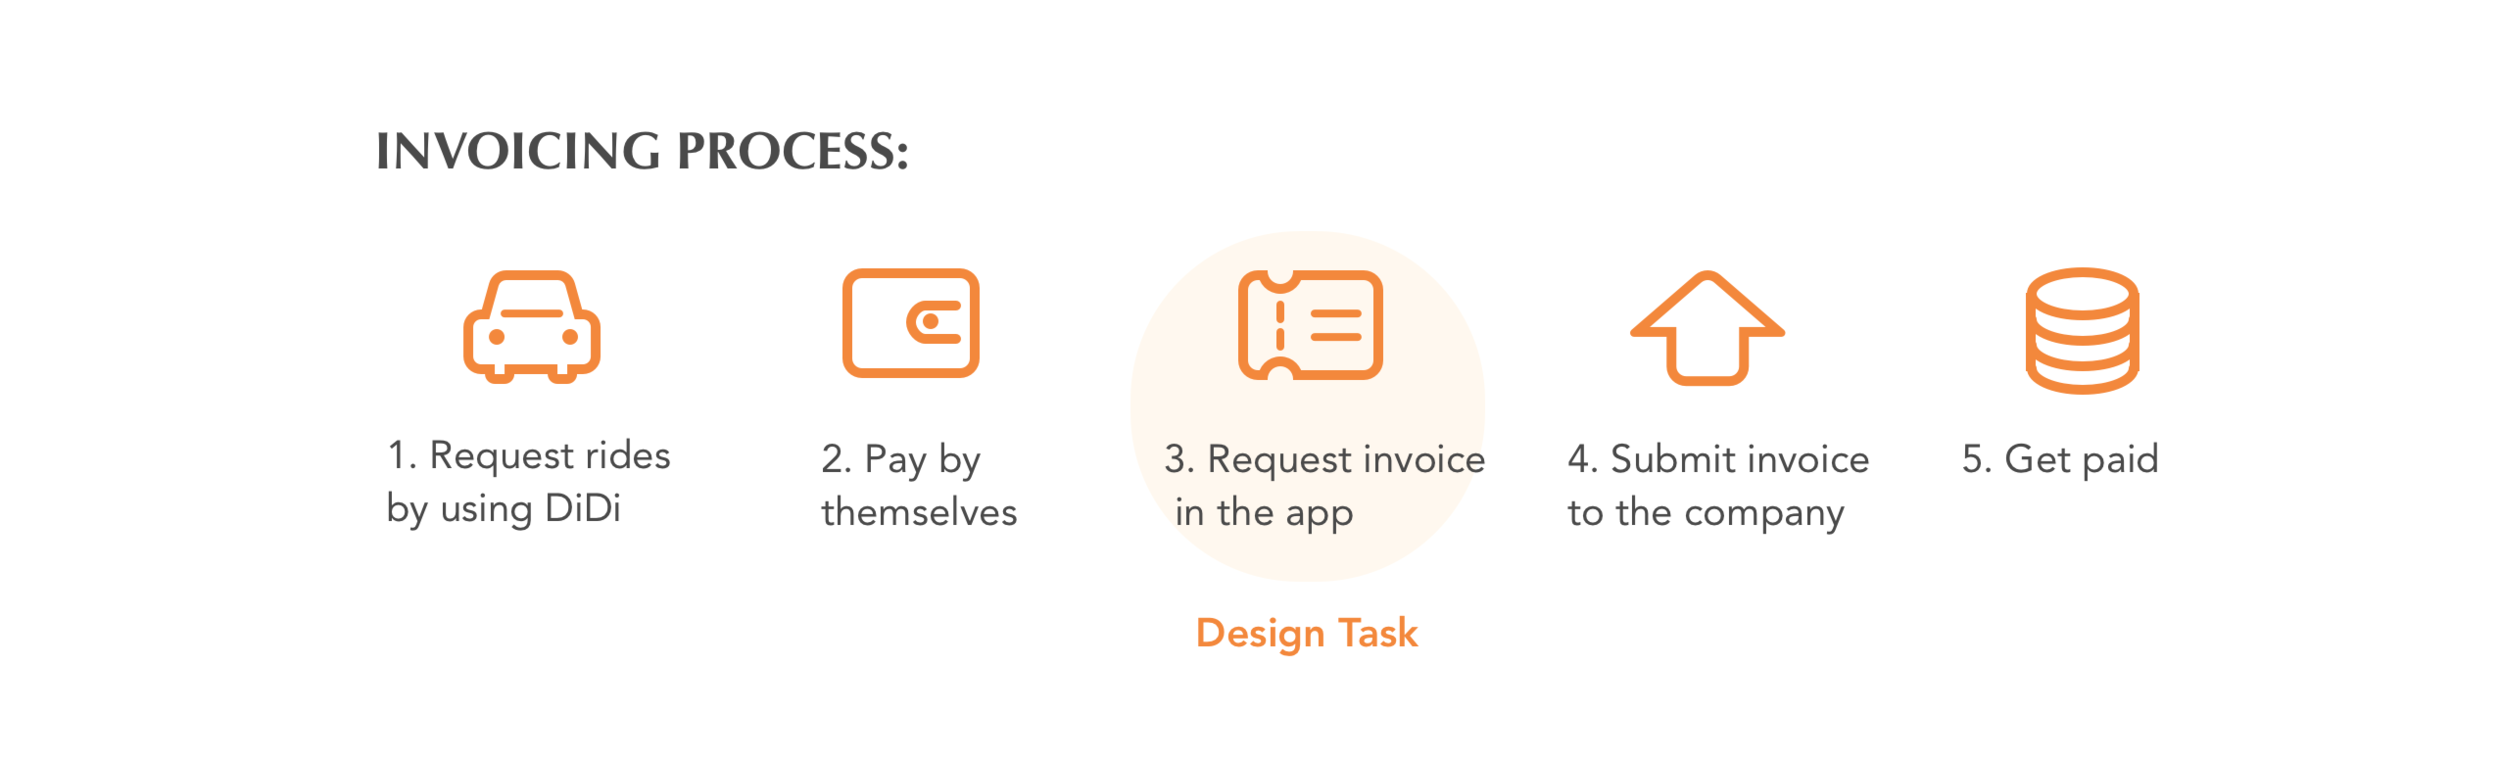 *Small companies and some organizations require employees to request ride invoice by themselves